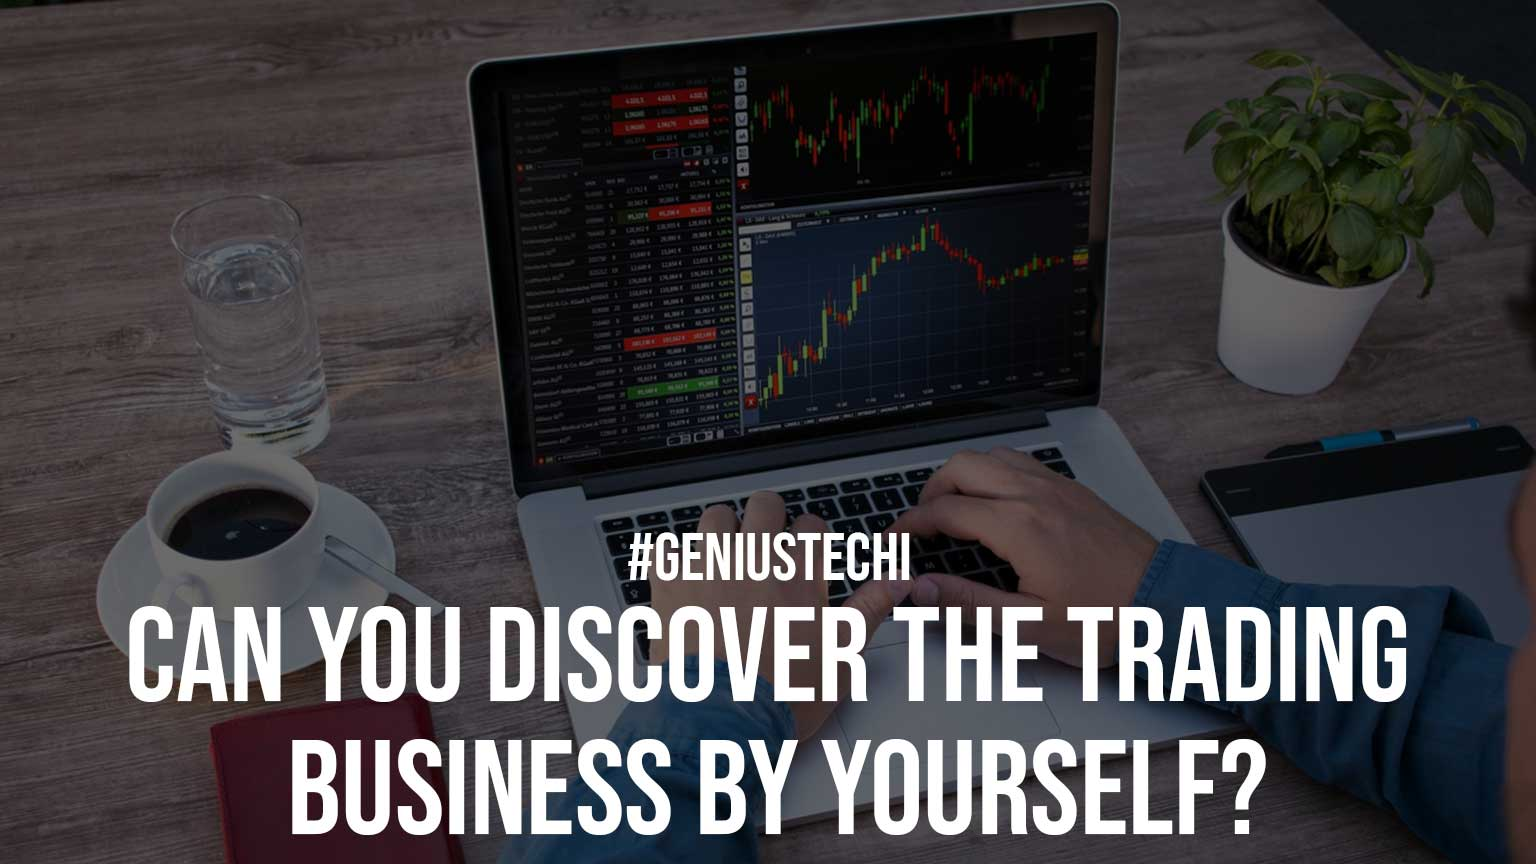 Can You Discover the Trading Business by Yourself